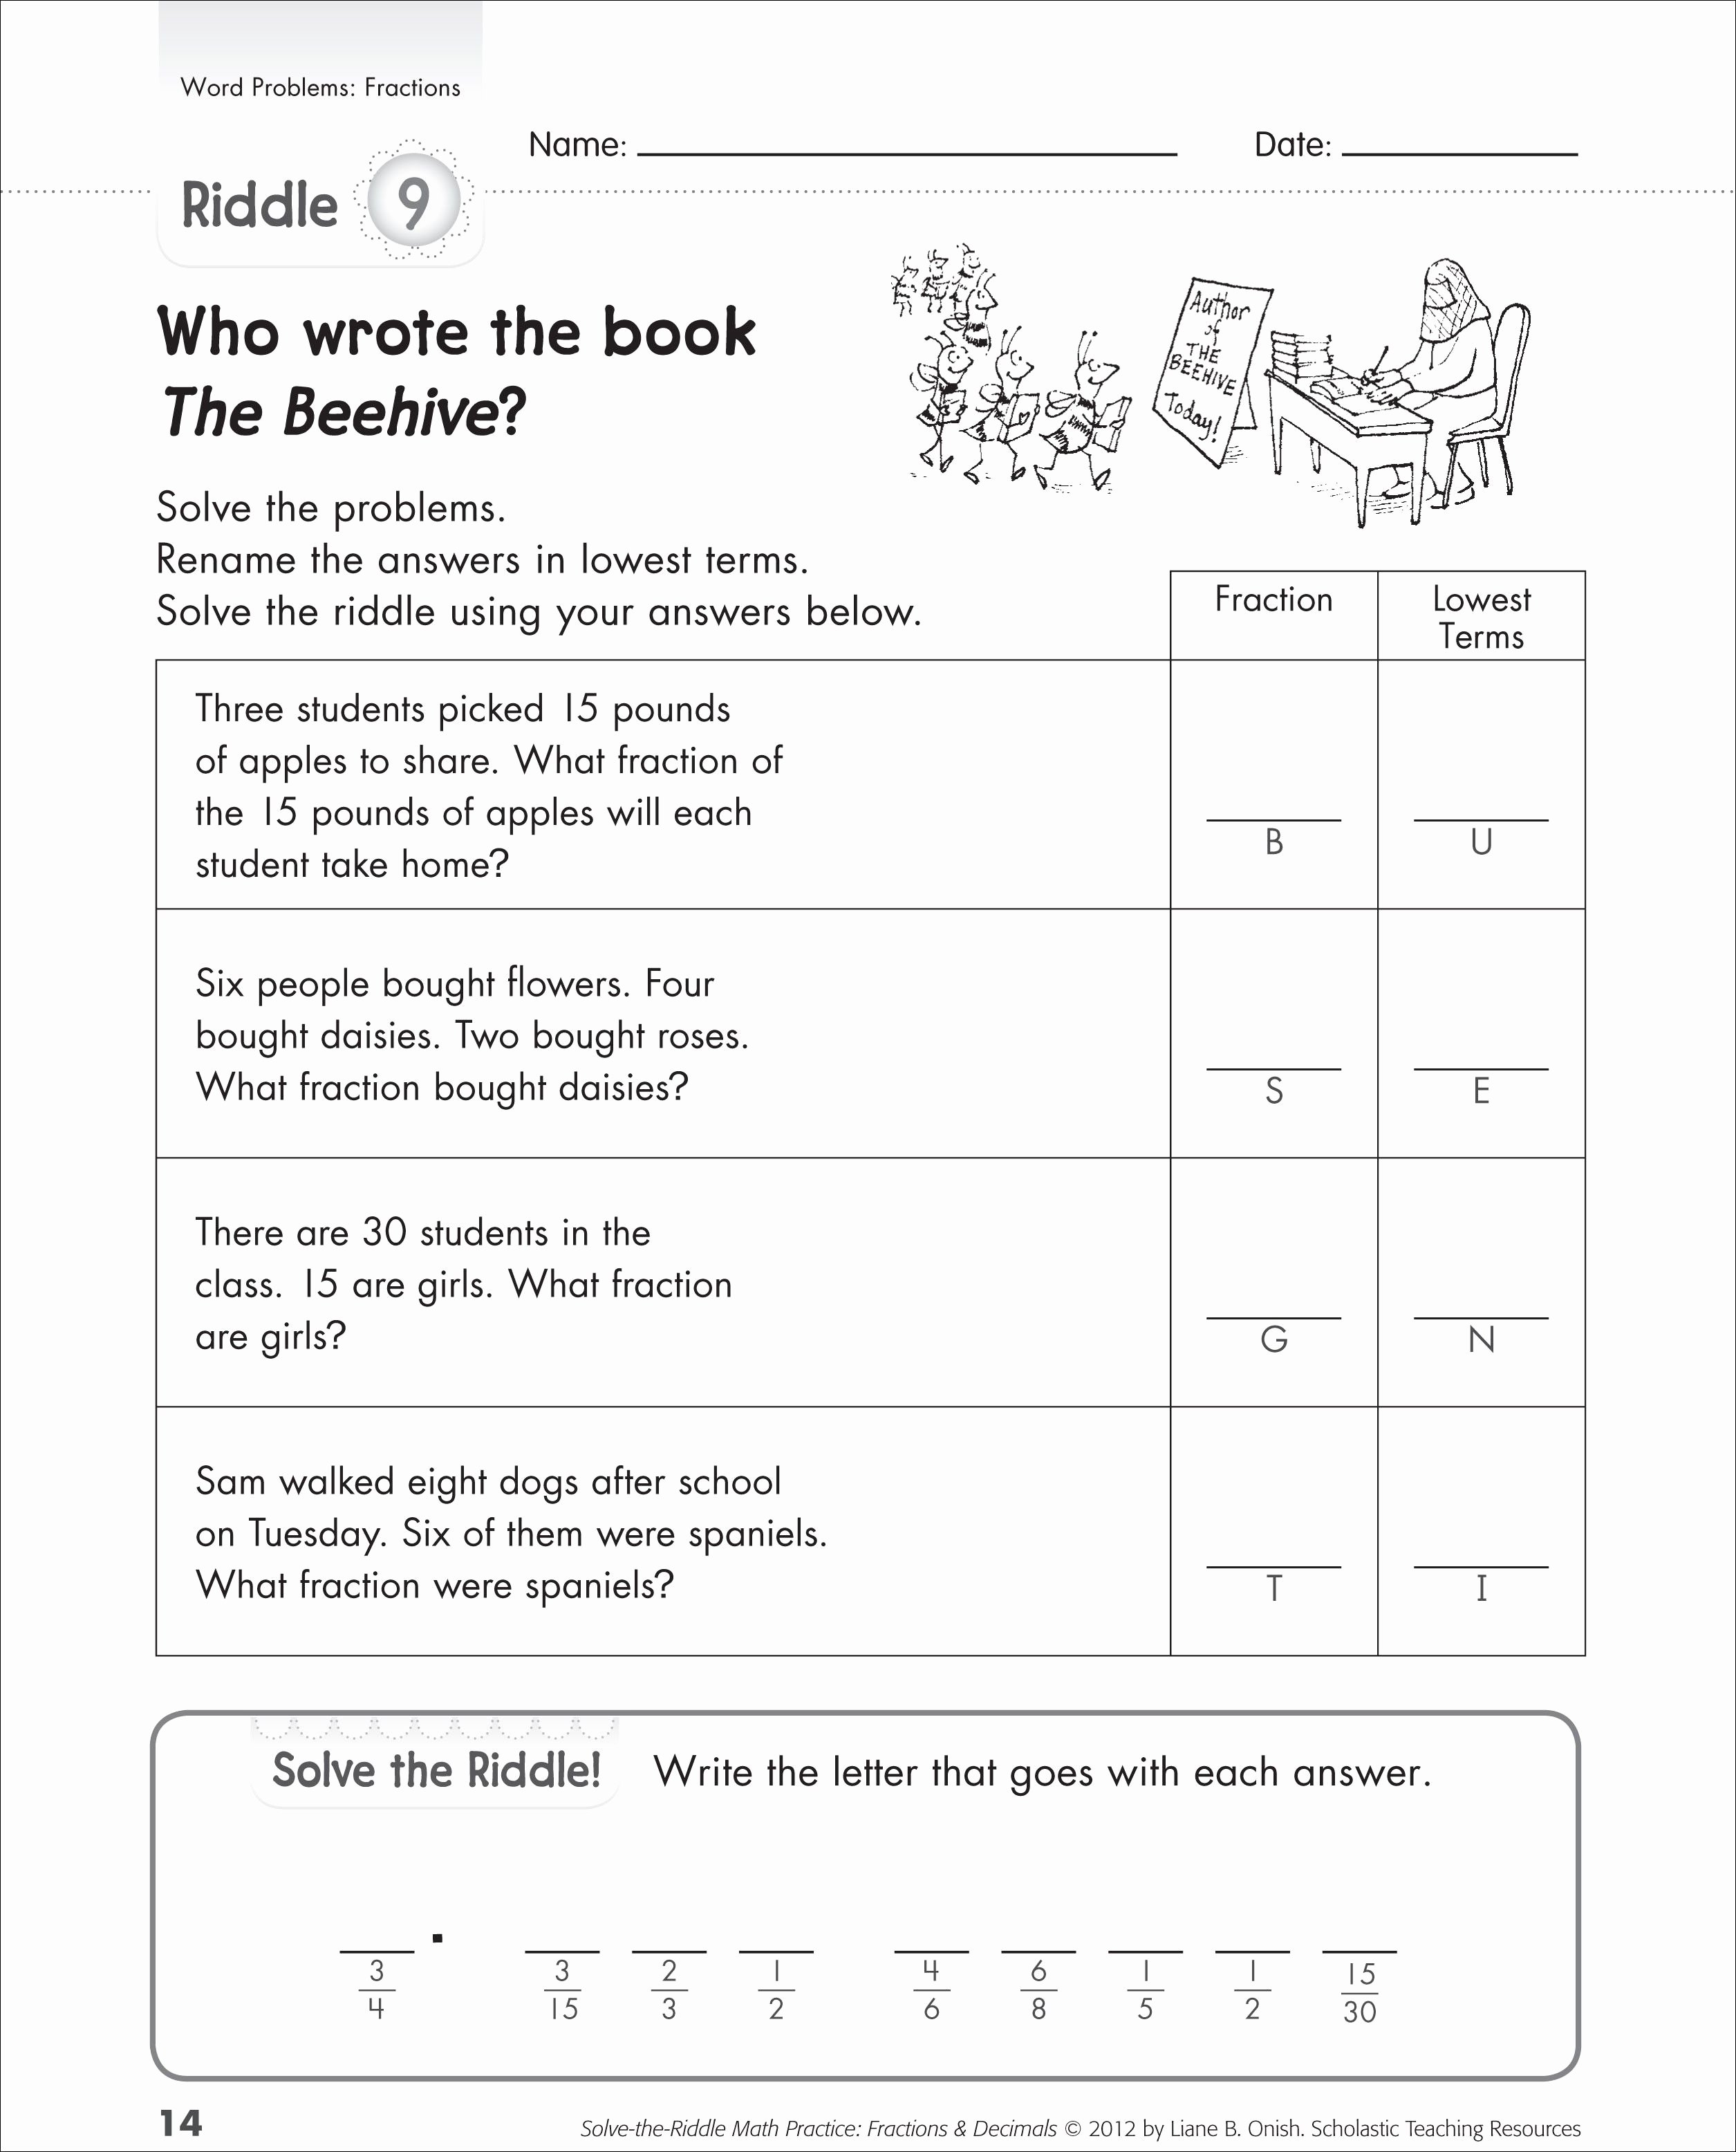 Multiplying Fractions Word Problems Worksheet Best Of Worksheet Multiplying Fractions Word Problems Worksheets